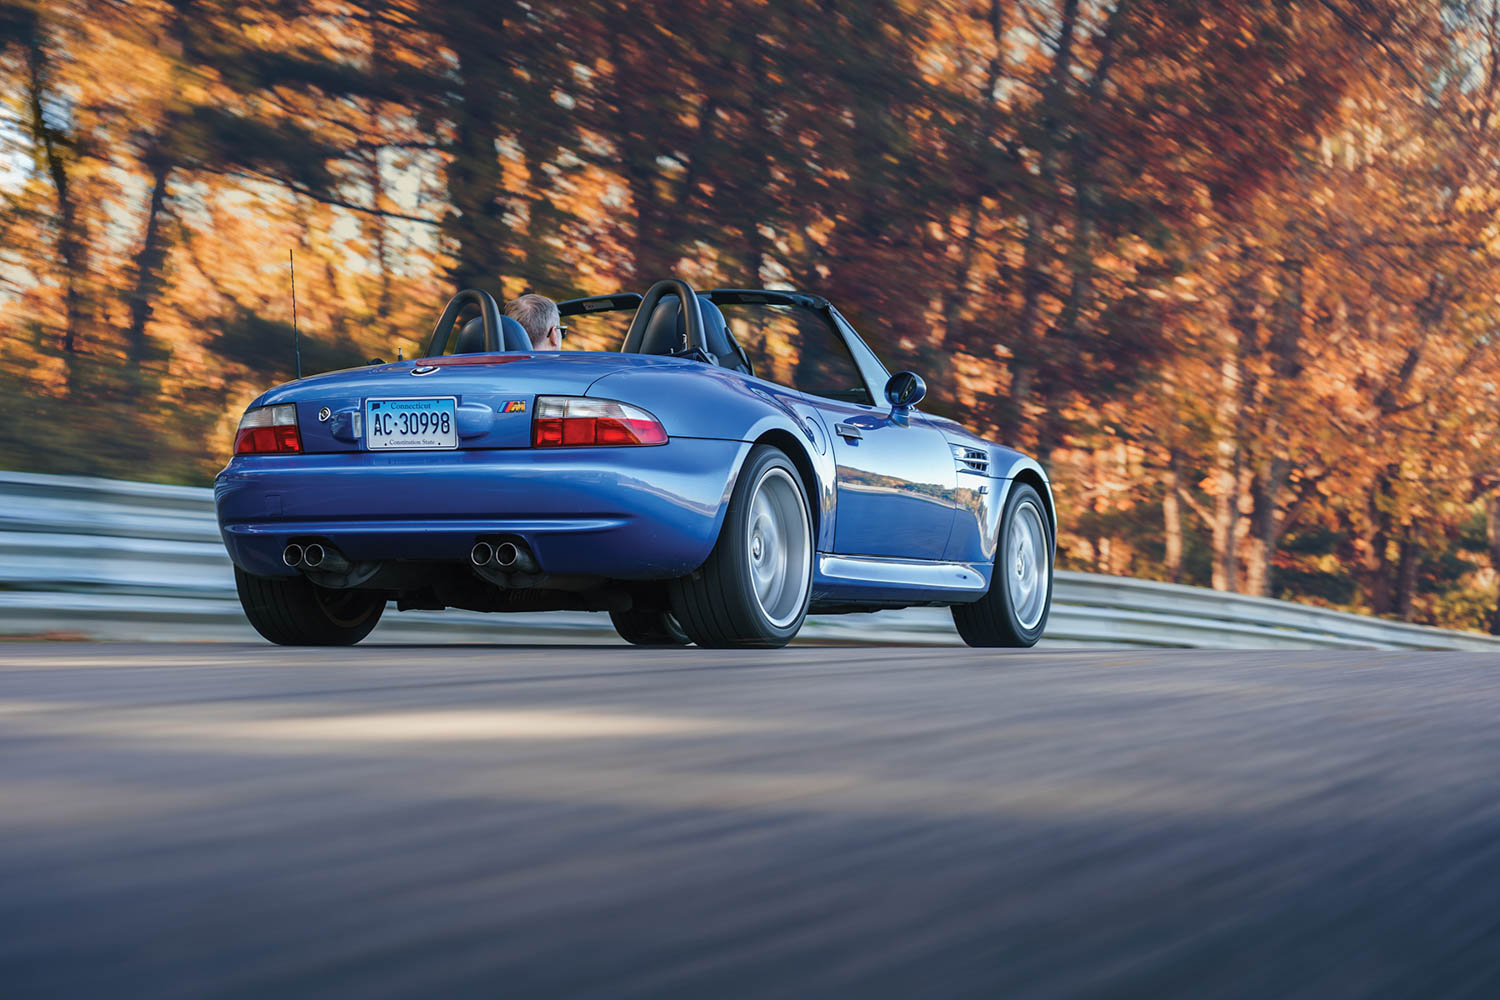 The flared wheel arches, fat tires, and quad tailpipes immediately identify the M version of the Z3. Coupes have already taken off, and now roadsters are moving.